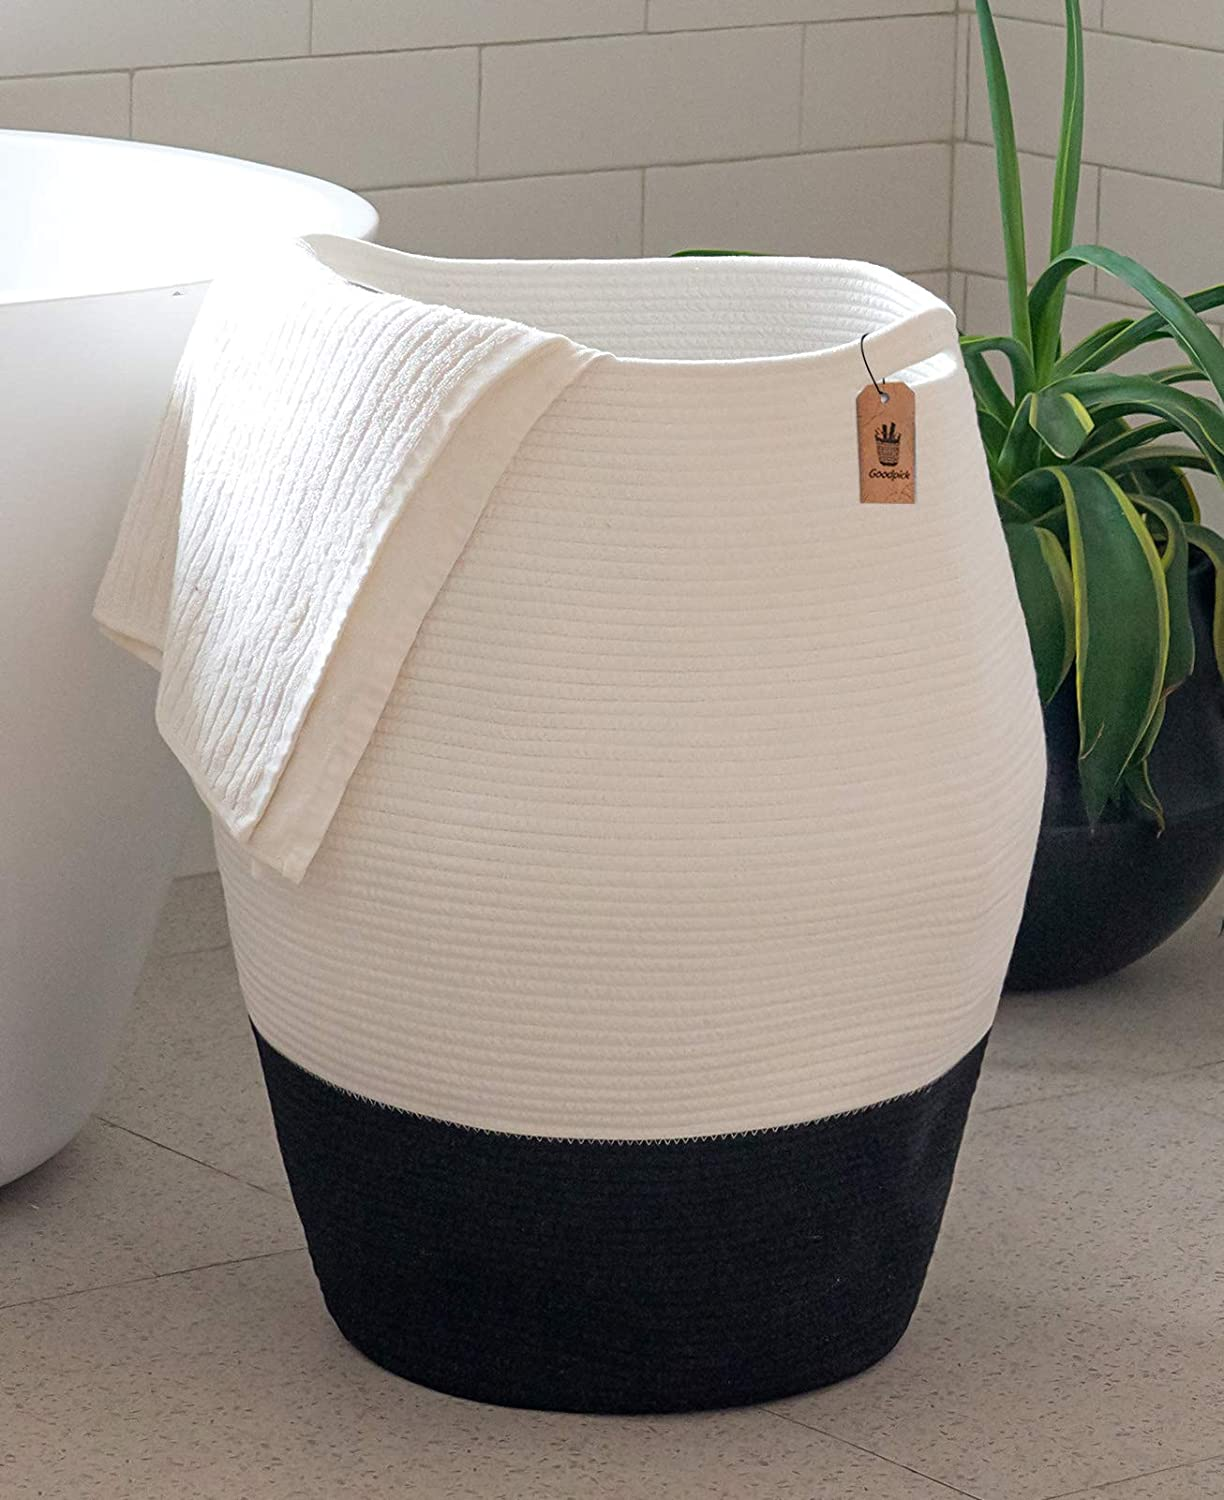 Goodpick Large Laundry Hamper | Tall Wicker Hamper Laundry Basket, Soft Cotton Rope Woven Hamper, Modern Design Graceful Curve Basket 25.6 Inches Height